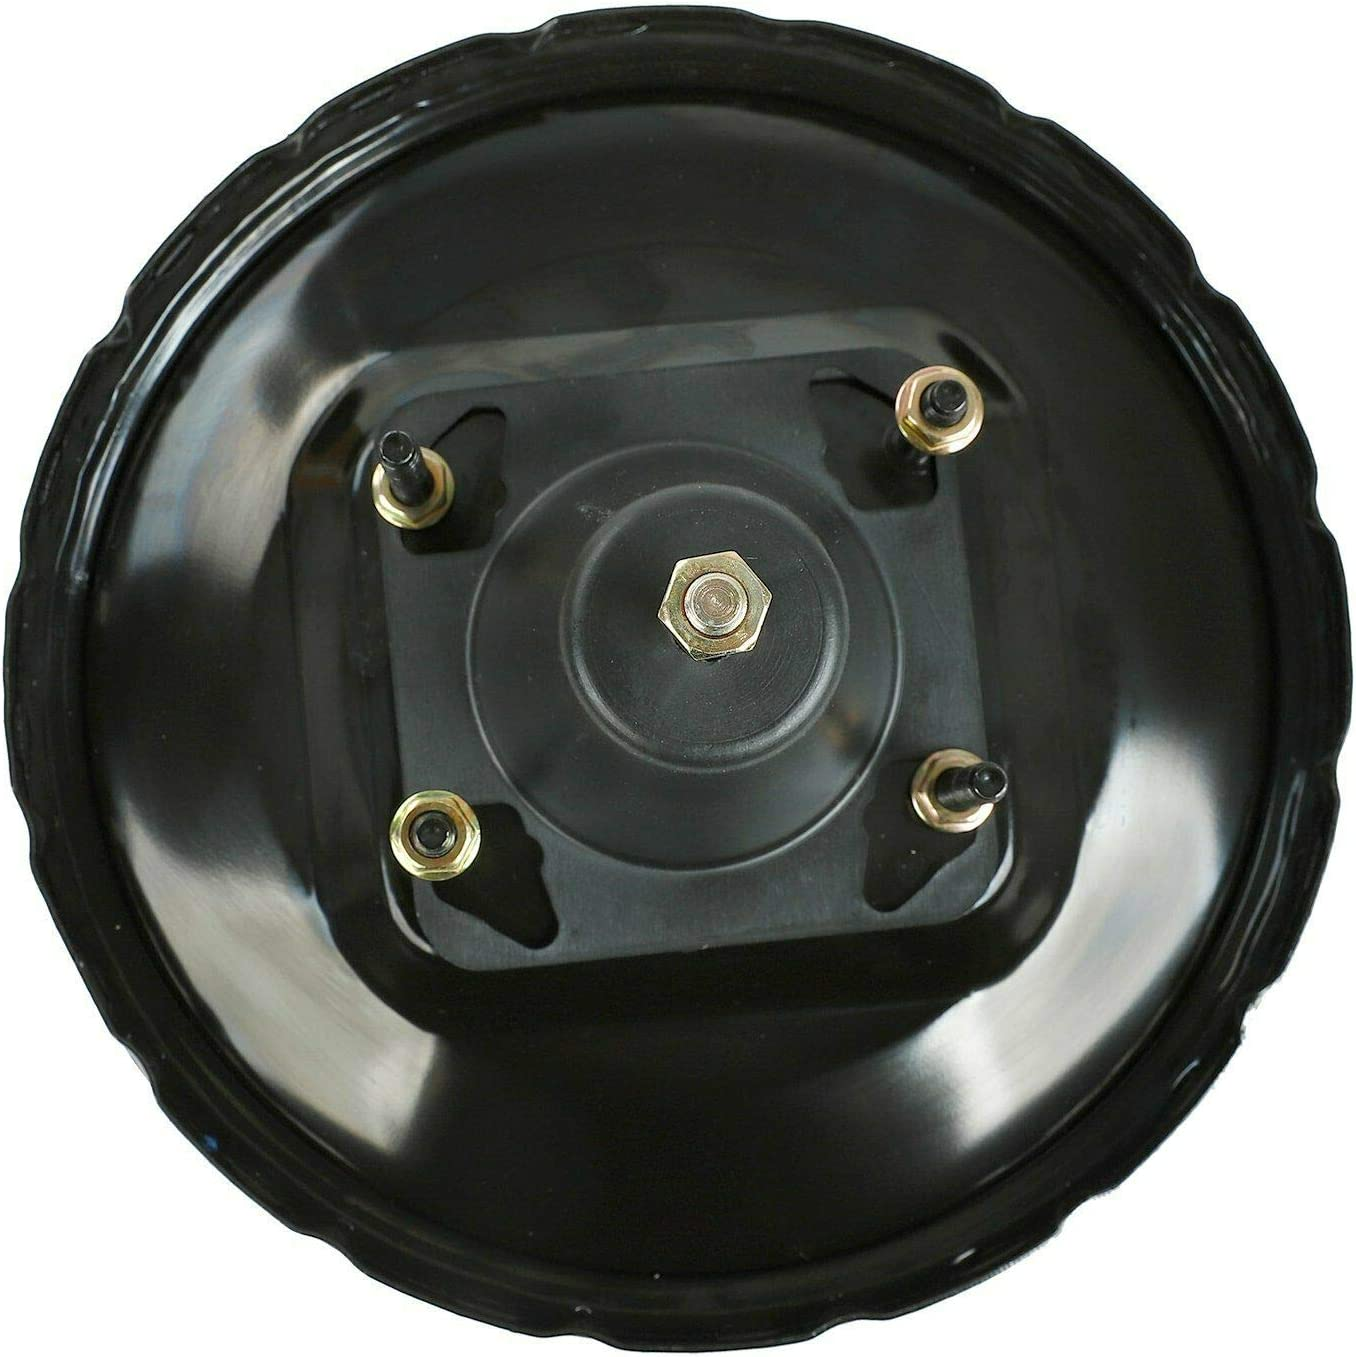 Power Brake Booster Compatible with 2000-2006 Toyota Tundra 4.0L 4.7L V6 V8 Replace# 53-4902 446100C012